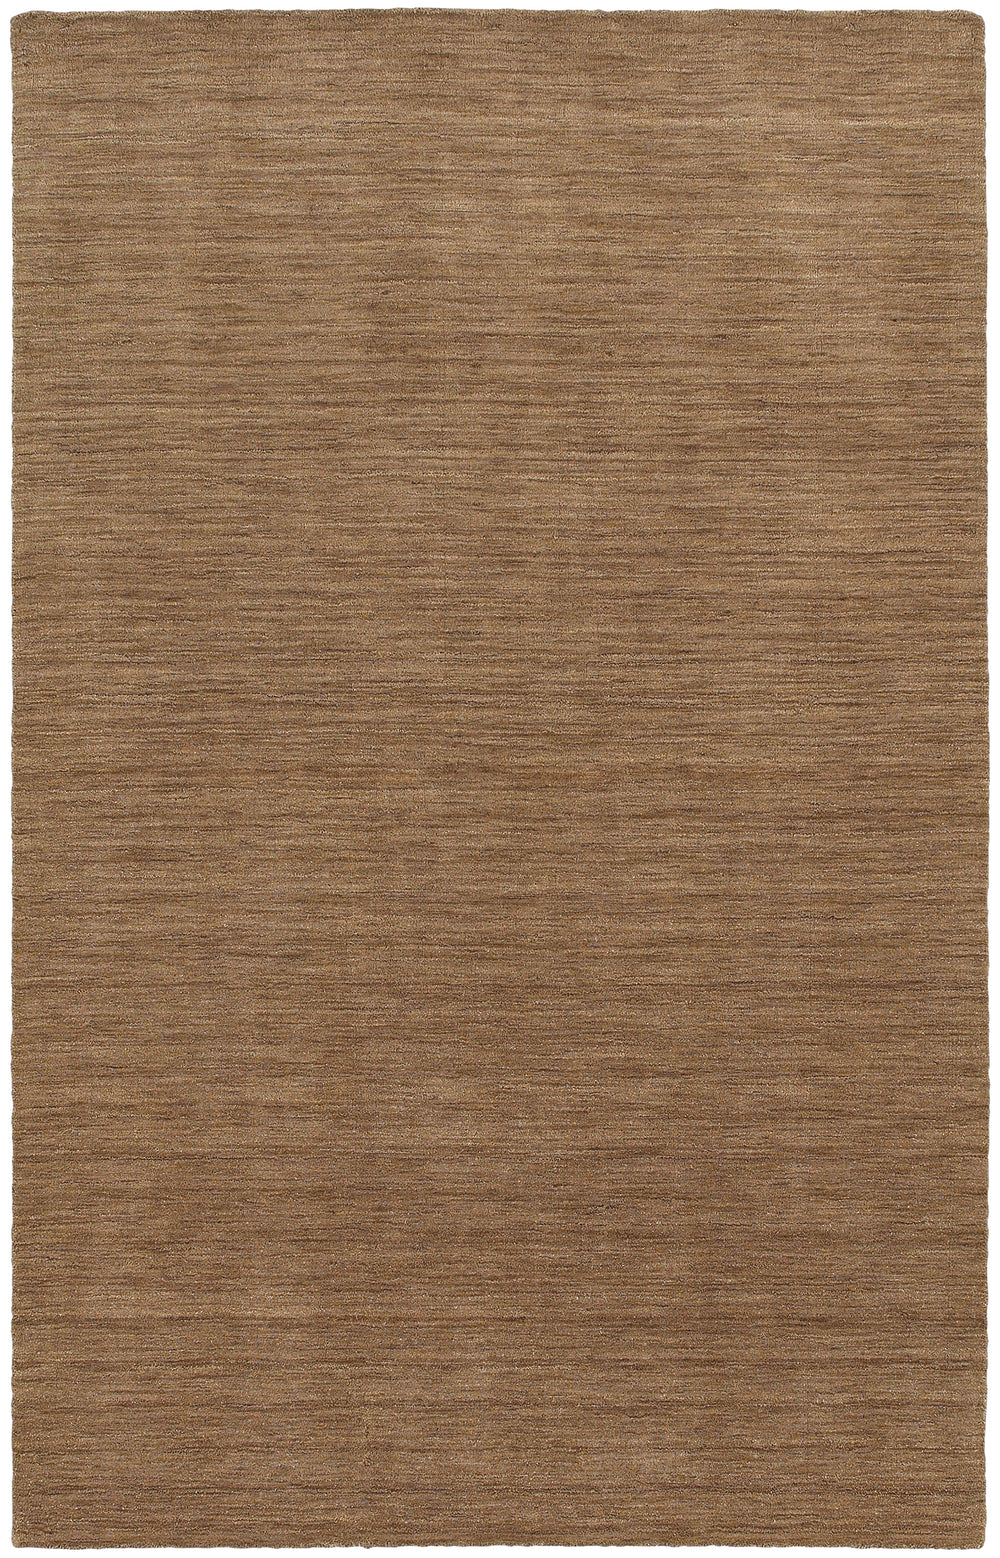 Oriental Weavers Aniston 27104 Area Rug